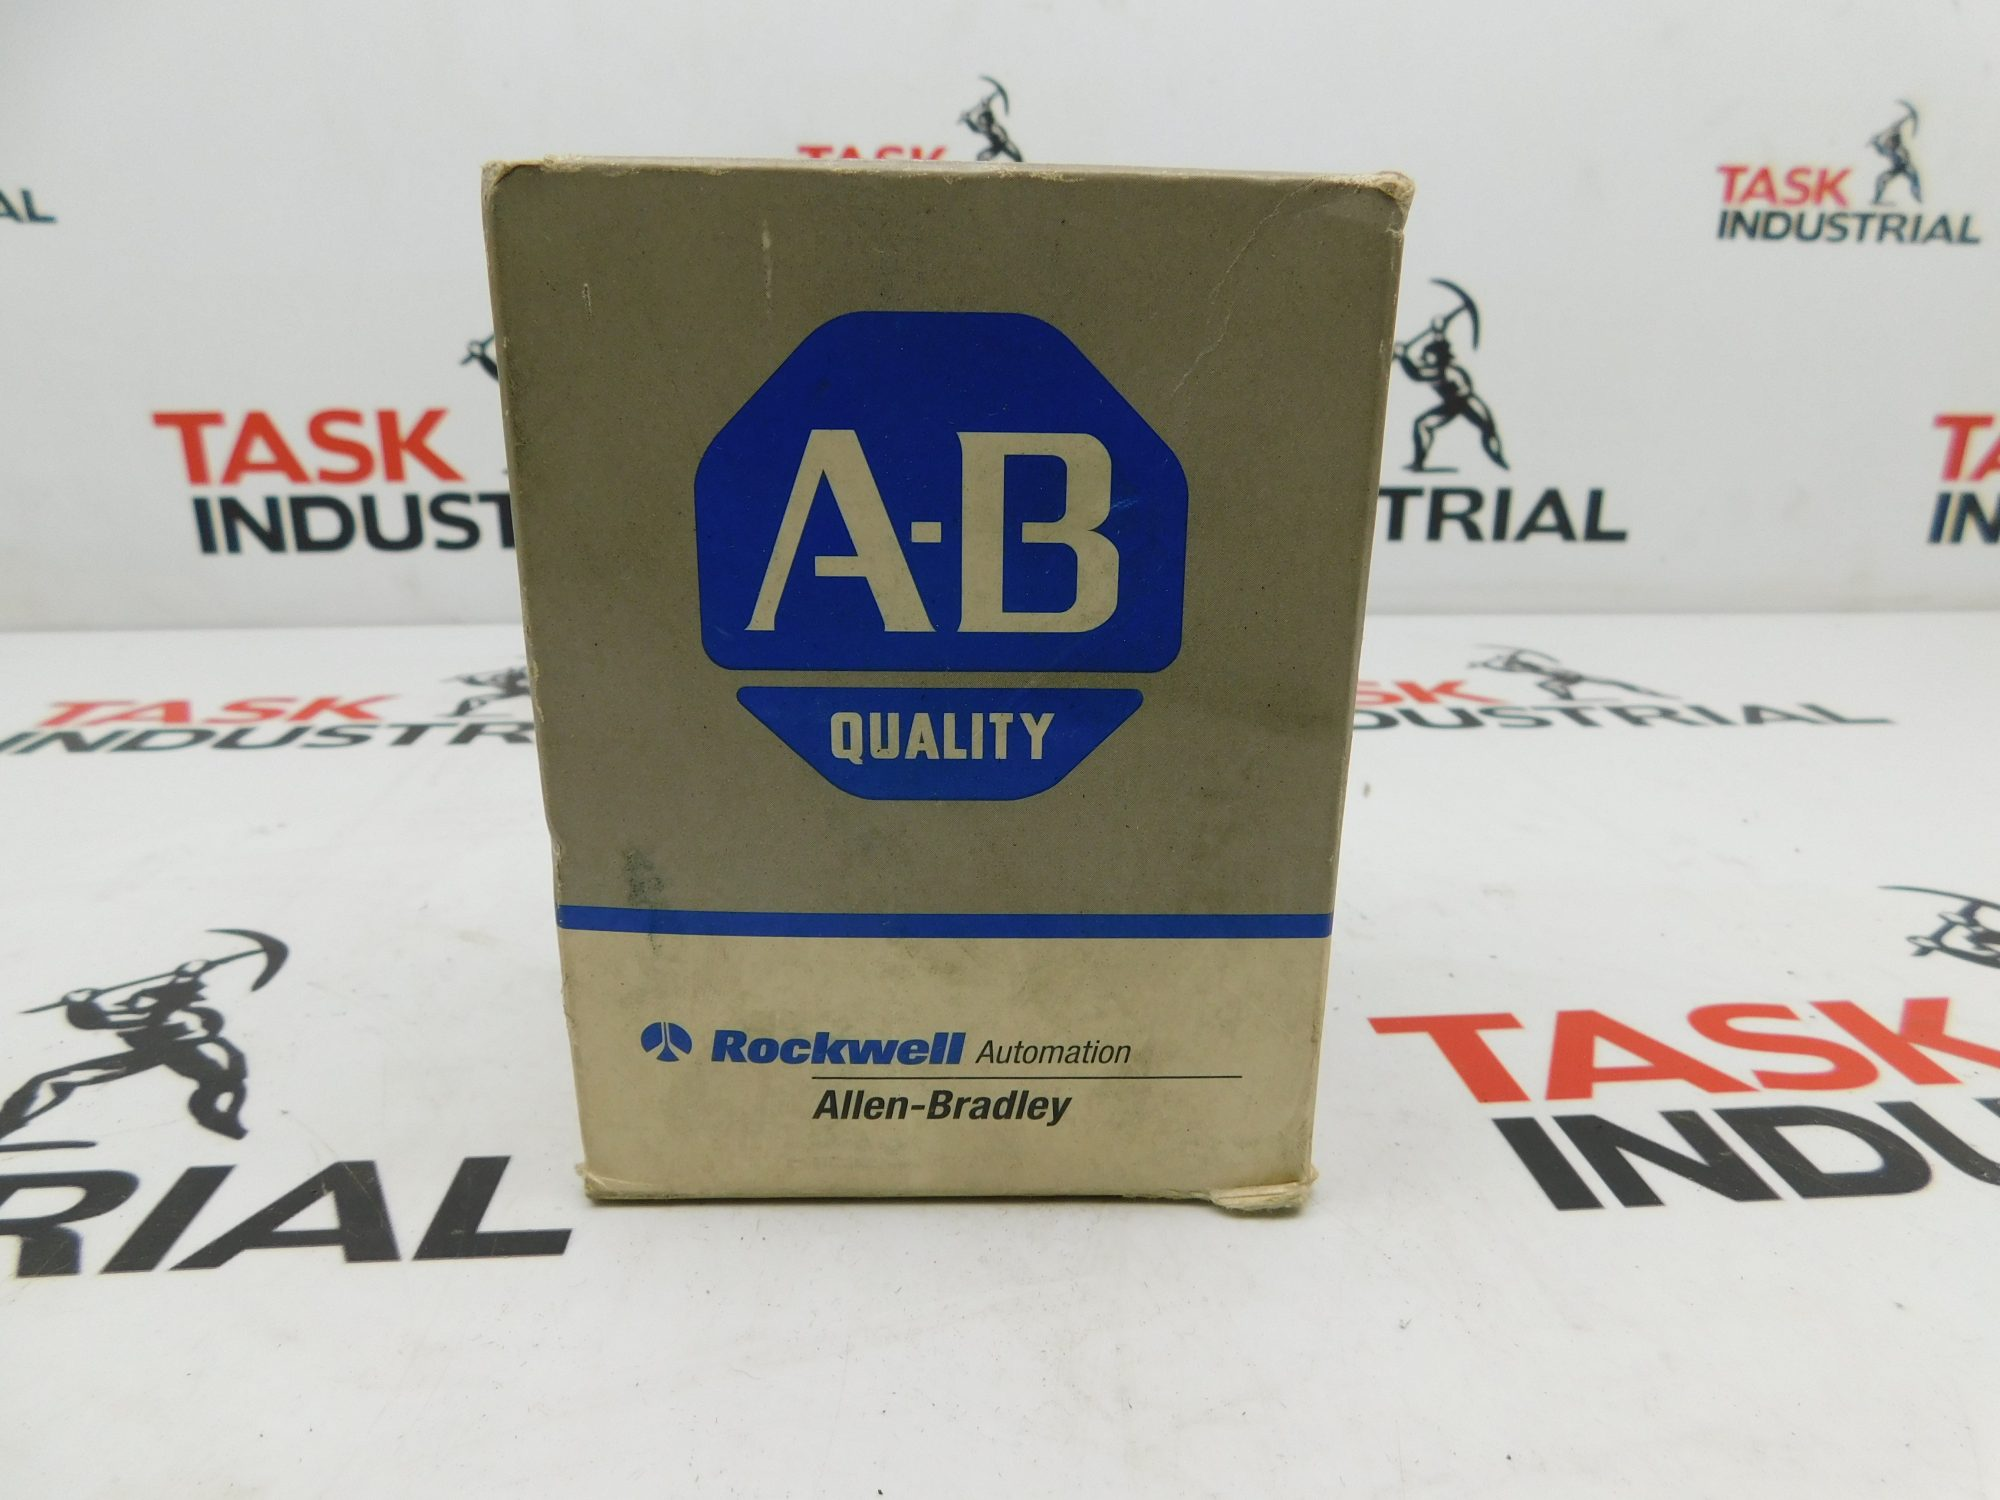 Allen-Bradley CAT No. 700-P400A1 Relay